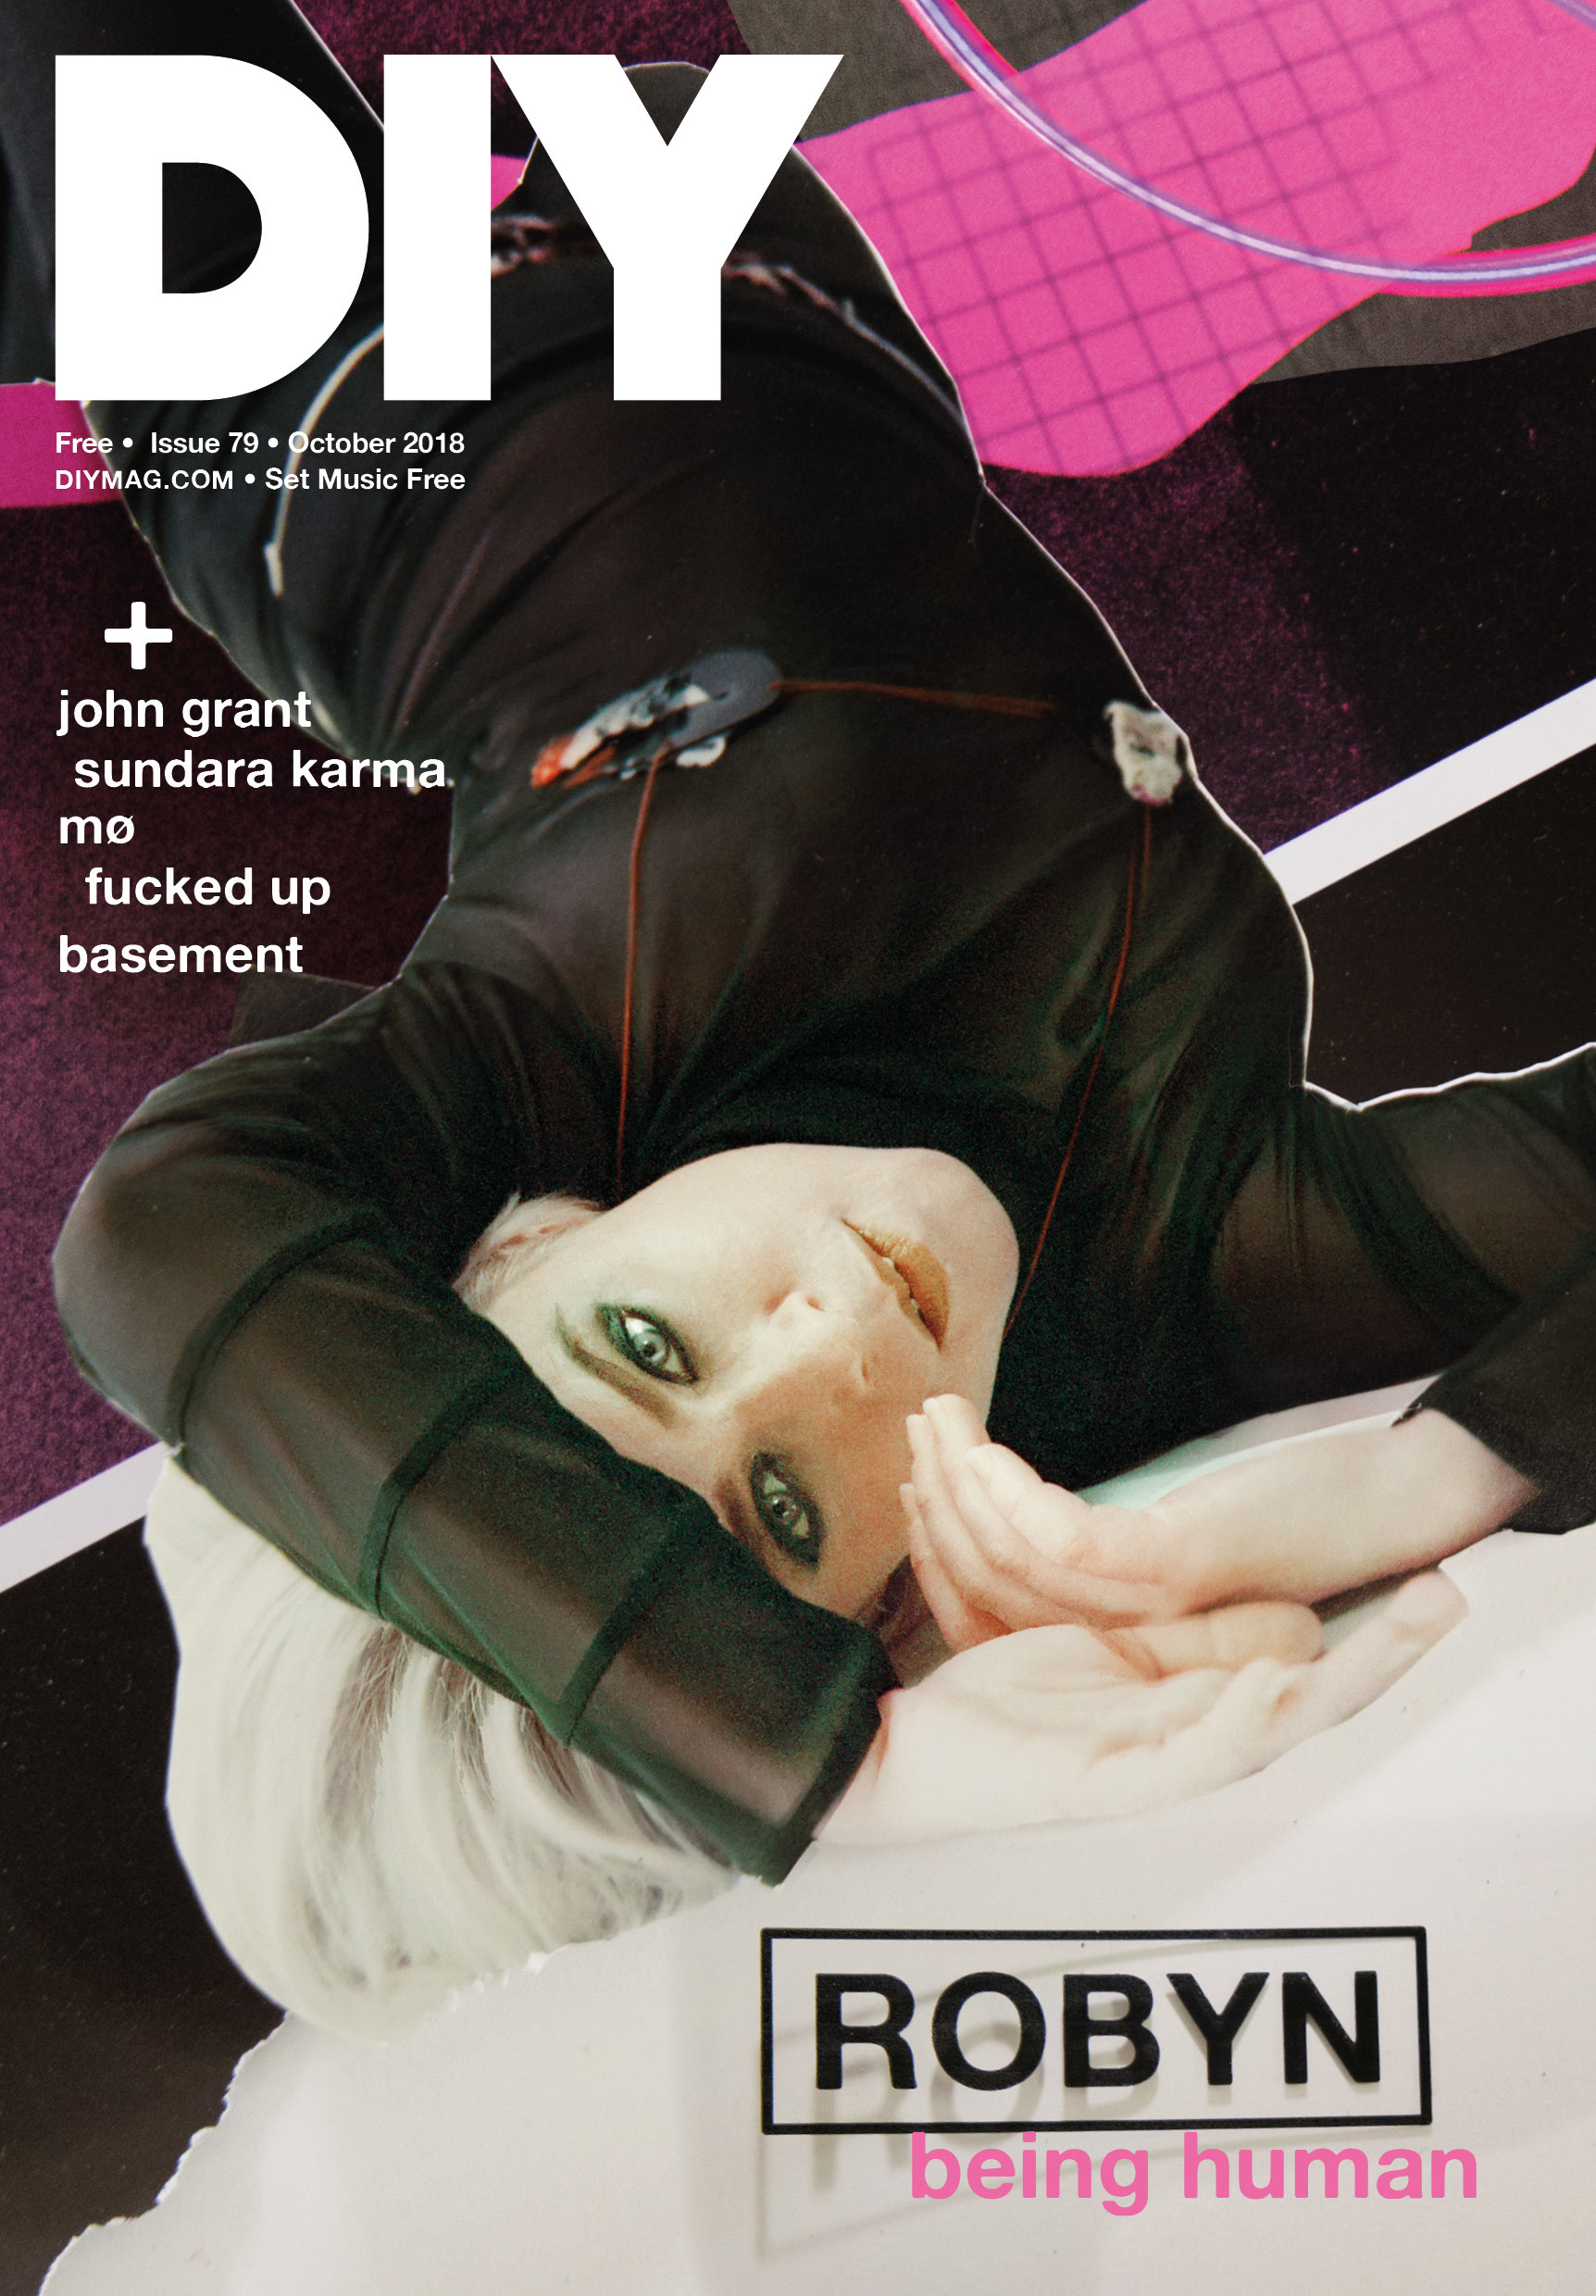 Robyn covers the October issue of DIY, out this Friday